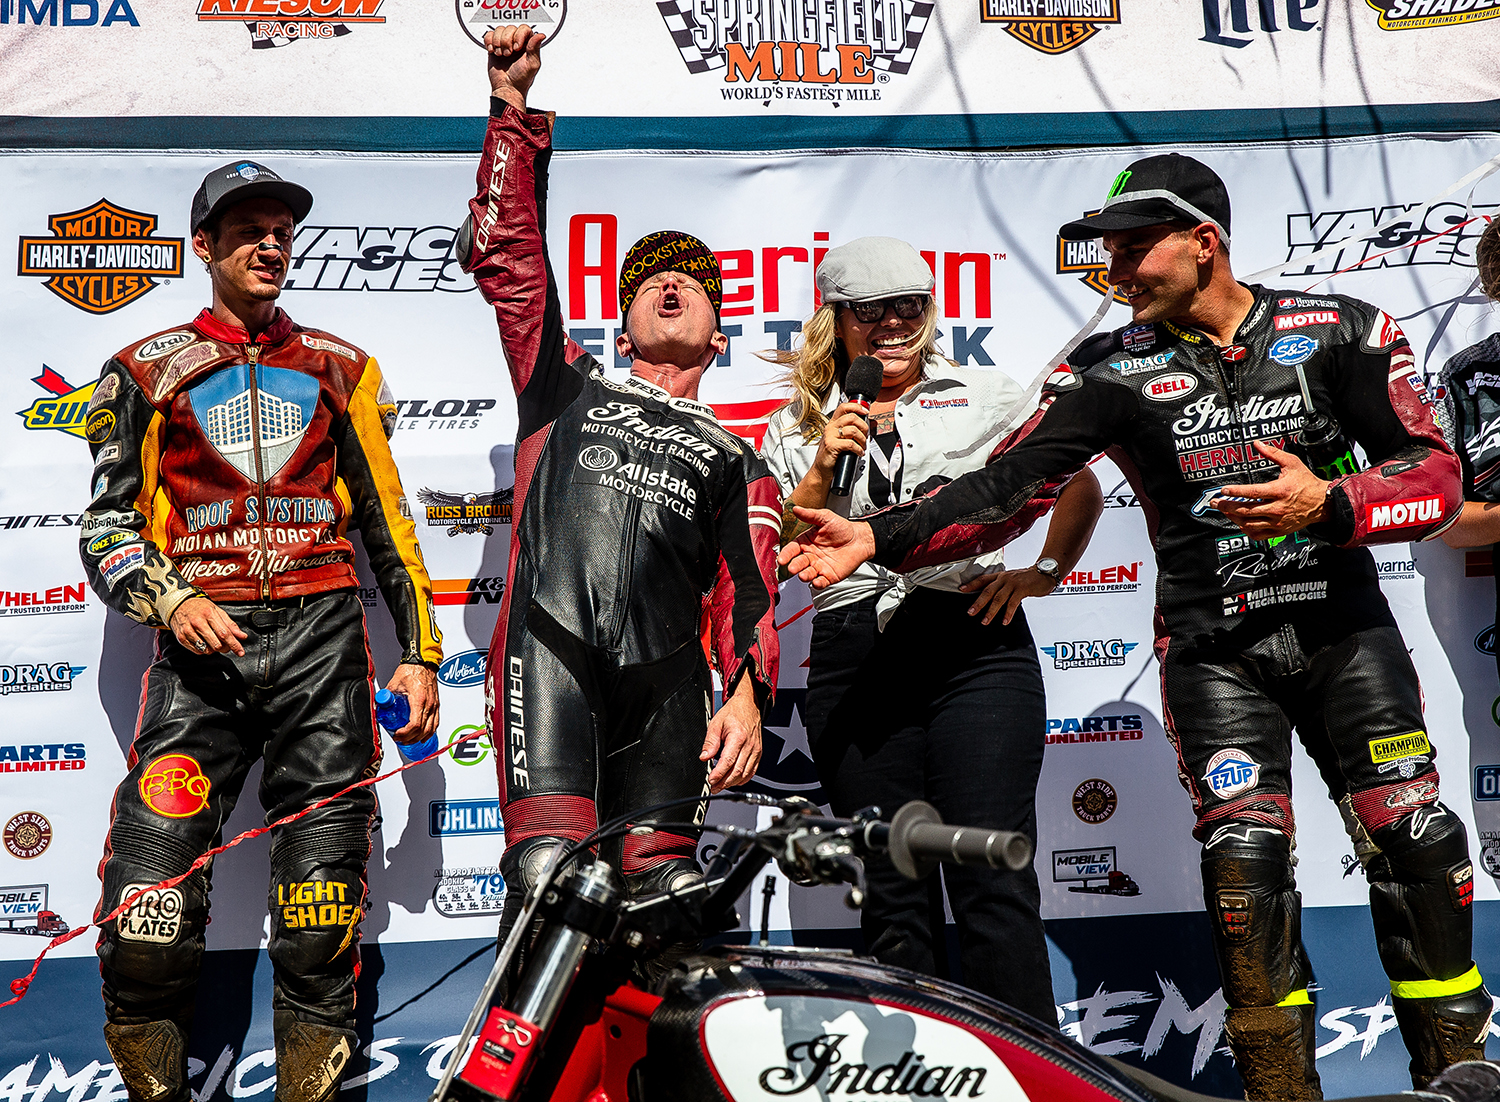 Bryan Smith screams out as he takes the top spot on the podium to celebrate winning his ninth race on the Springfield Mile during the American Flat Track Springfield Mile II at the Illinois State Fairgrounds, Sunday, Sept. 2, 2018, in Springfield, Ill. [Justin L. Fowler/The State Journal-Register]